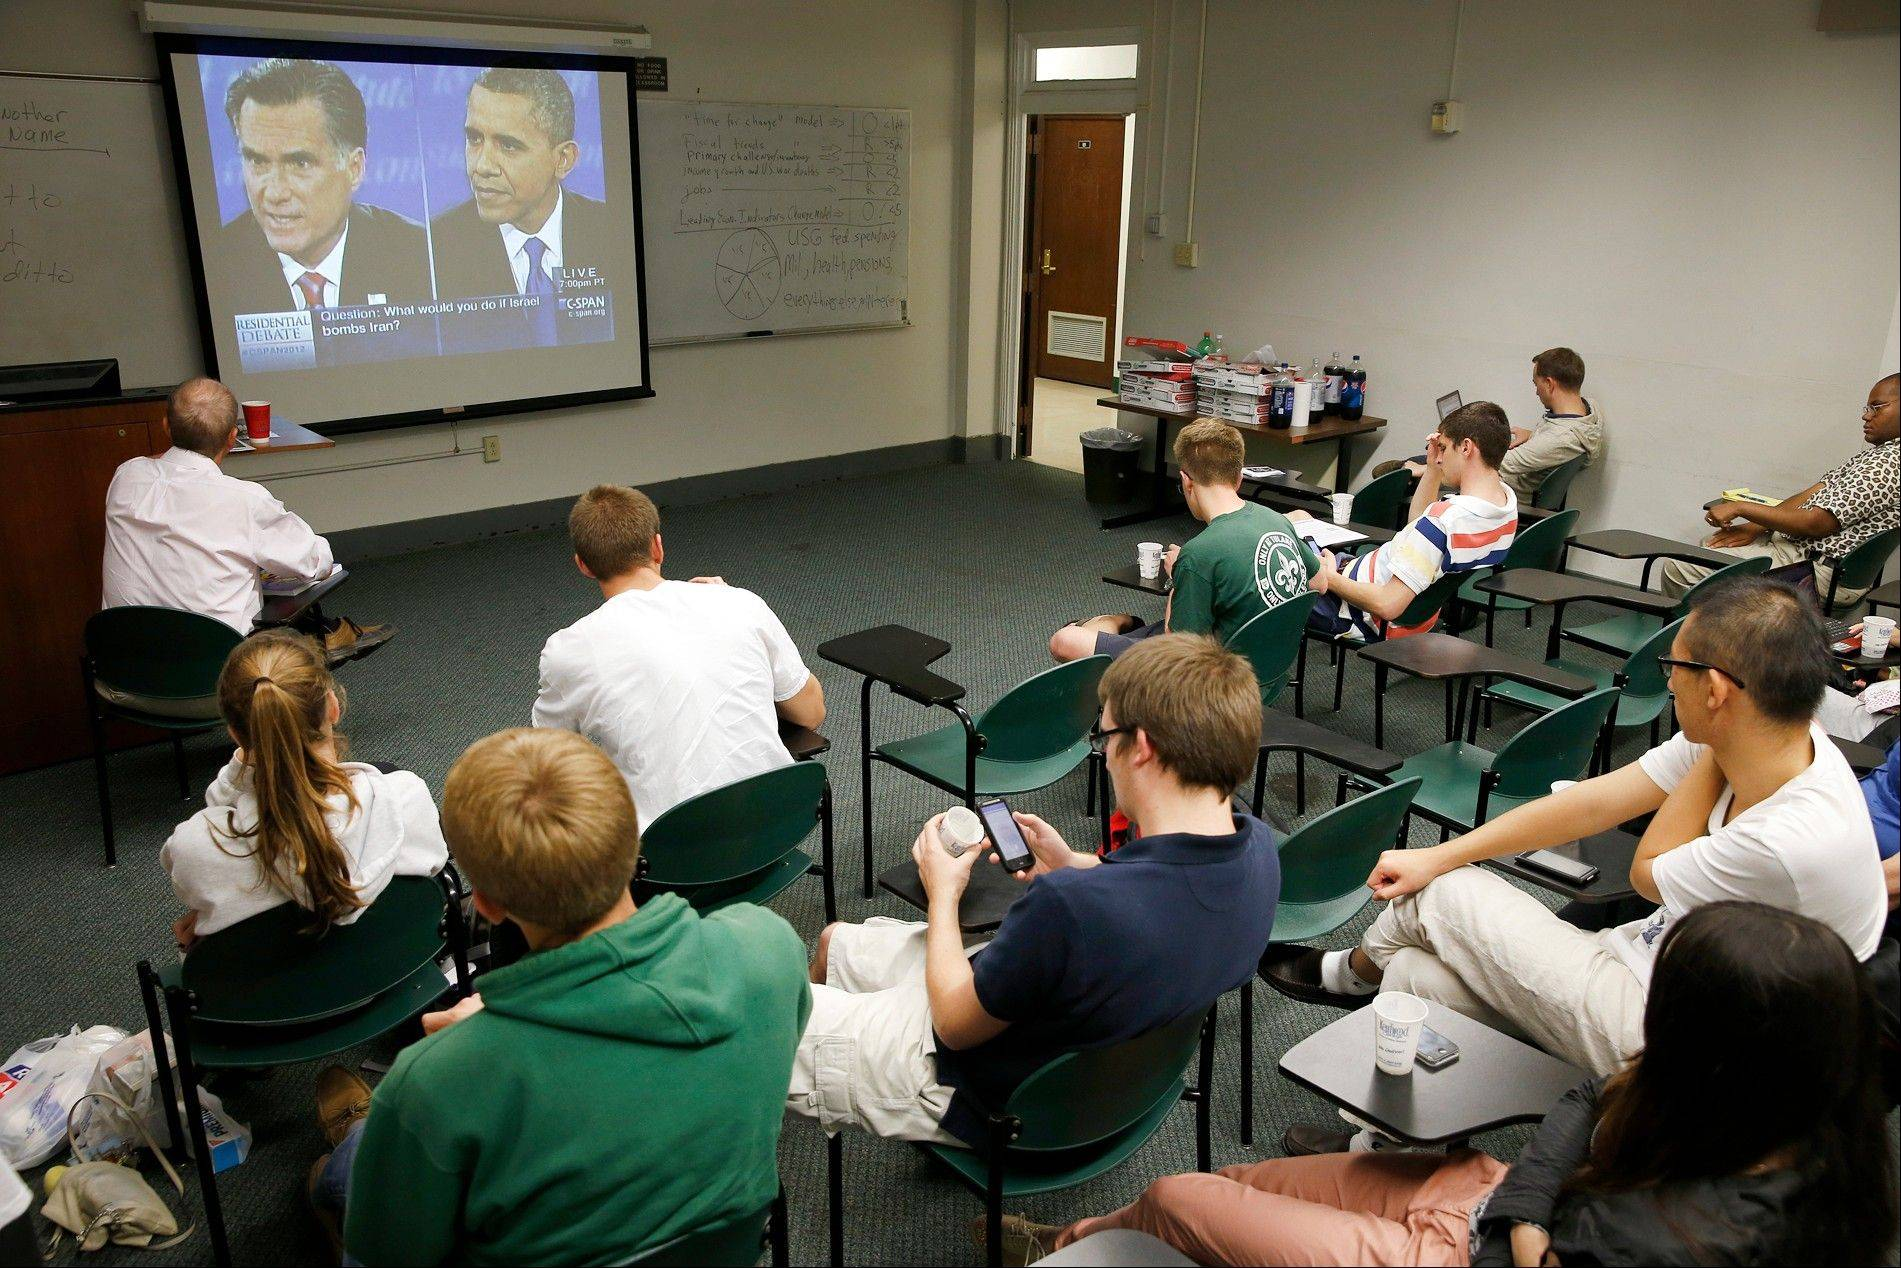 A group of Tulane University students watch the third presidential debate at Tulane University in New Orleans on Monday. Tulane's political science department sponsored the event.